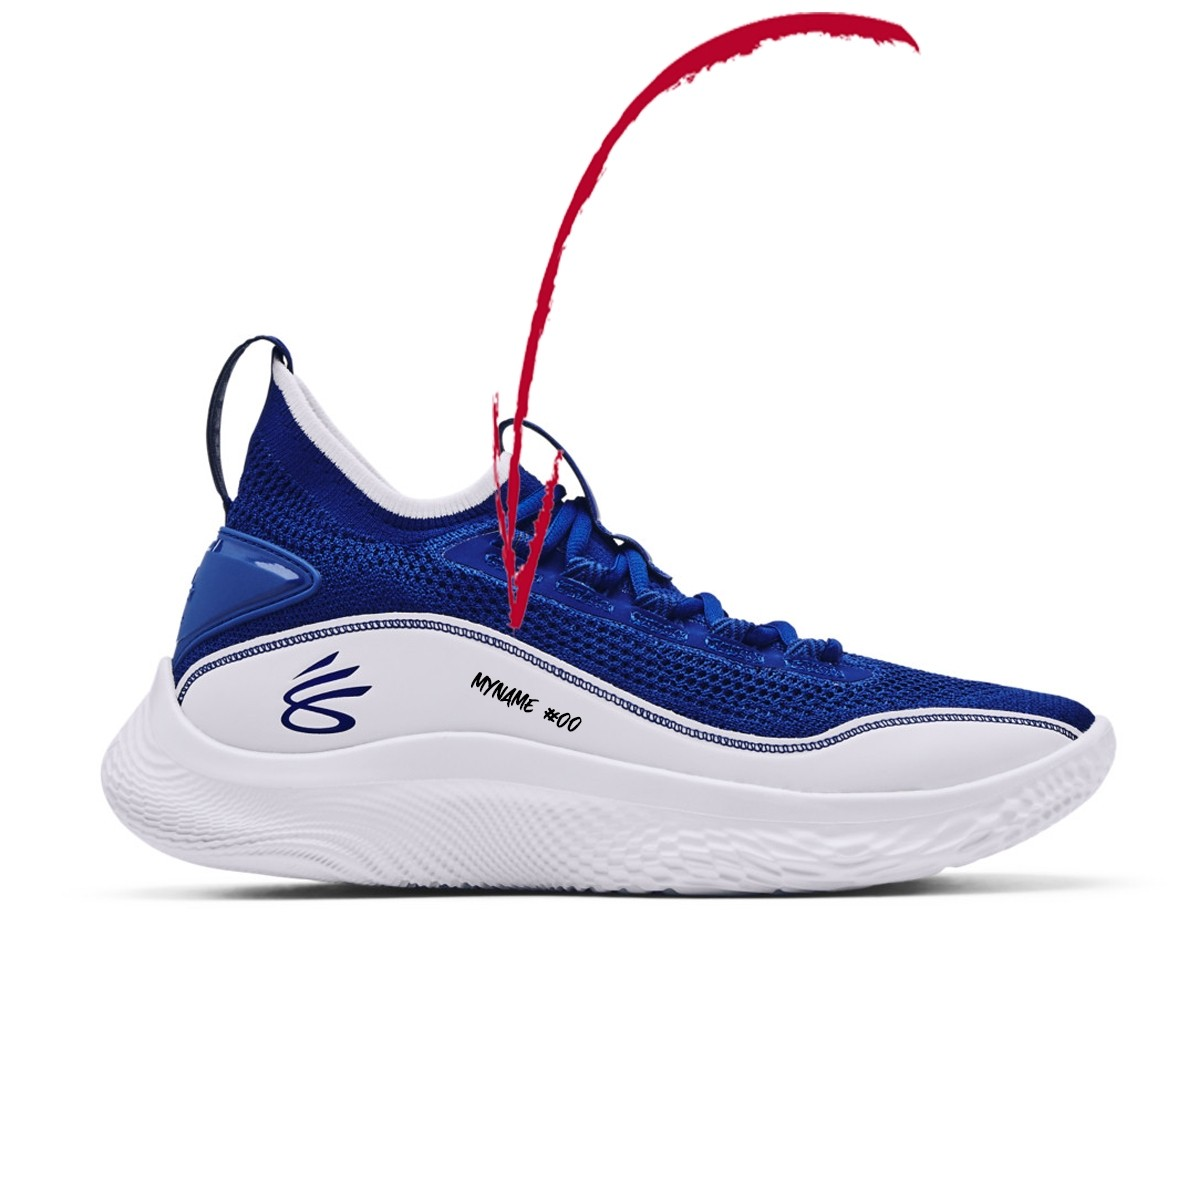 Under Armour Curry 8 Jr 'Dub Nation'-3023527-402